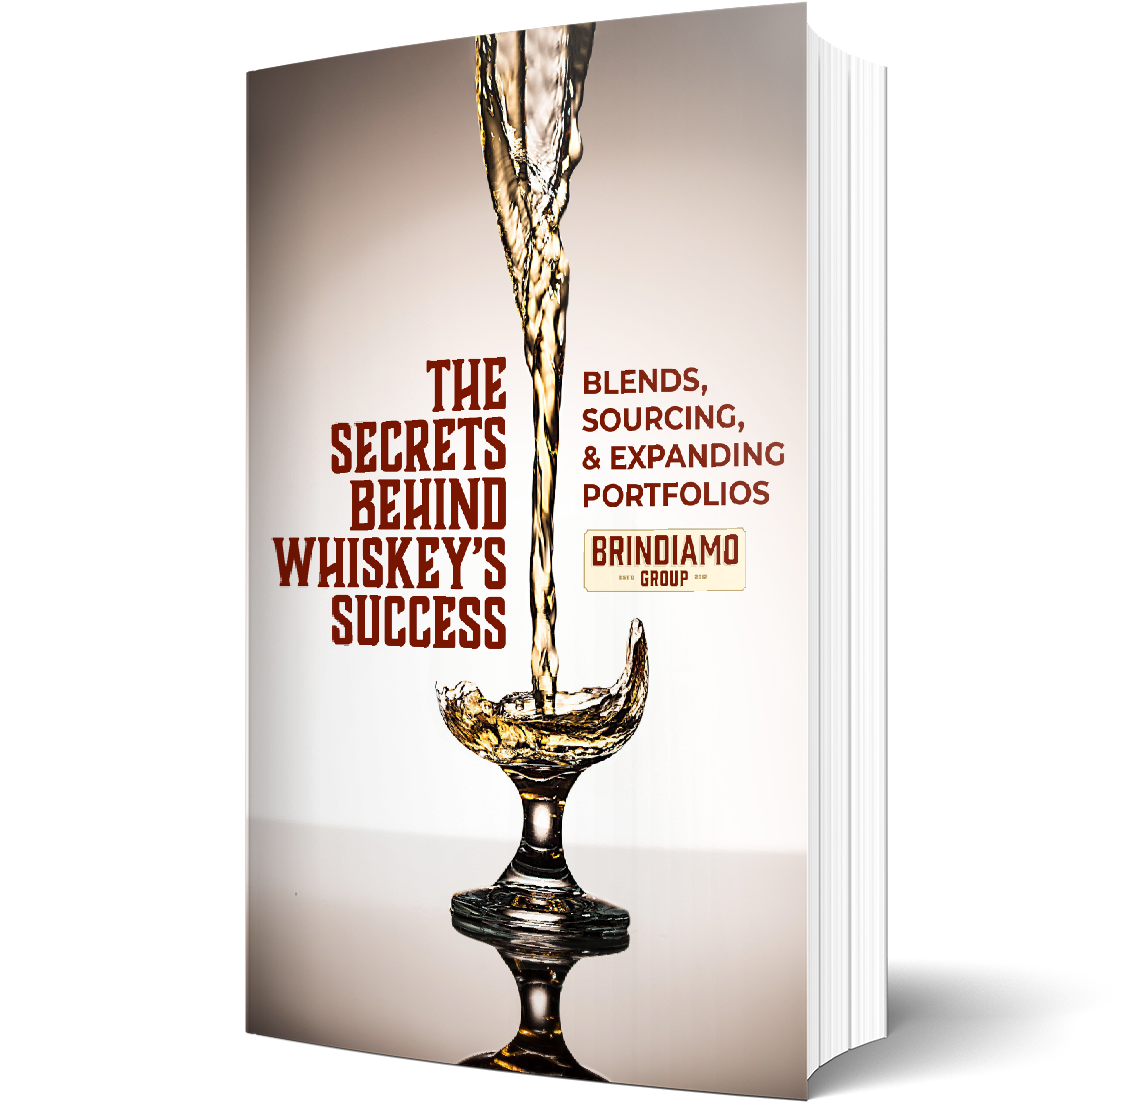 Brindiamo-Whiskey-Success-eBook-cover-mockup.png